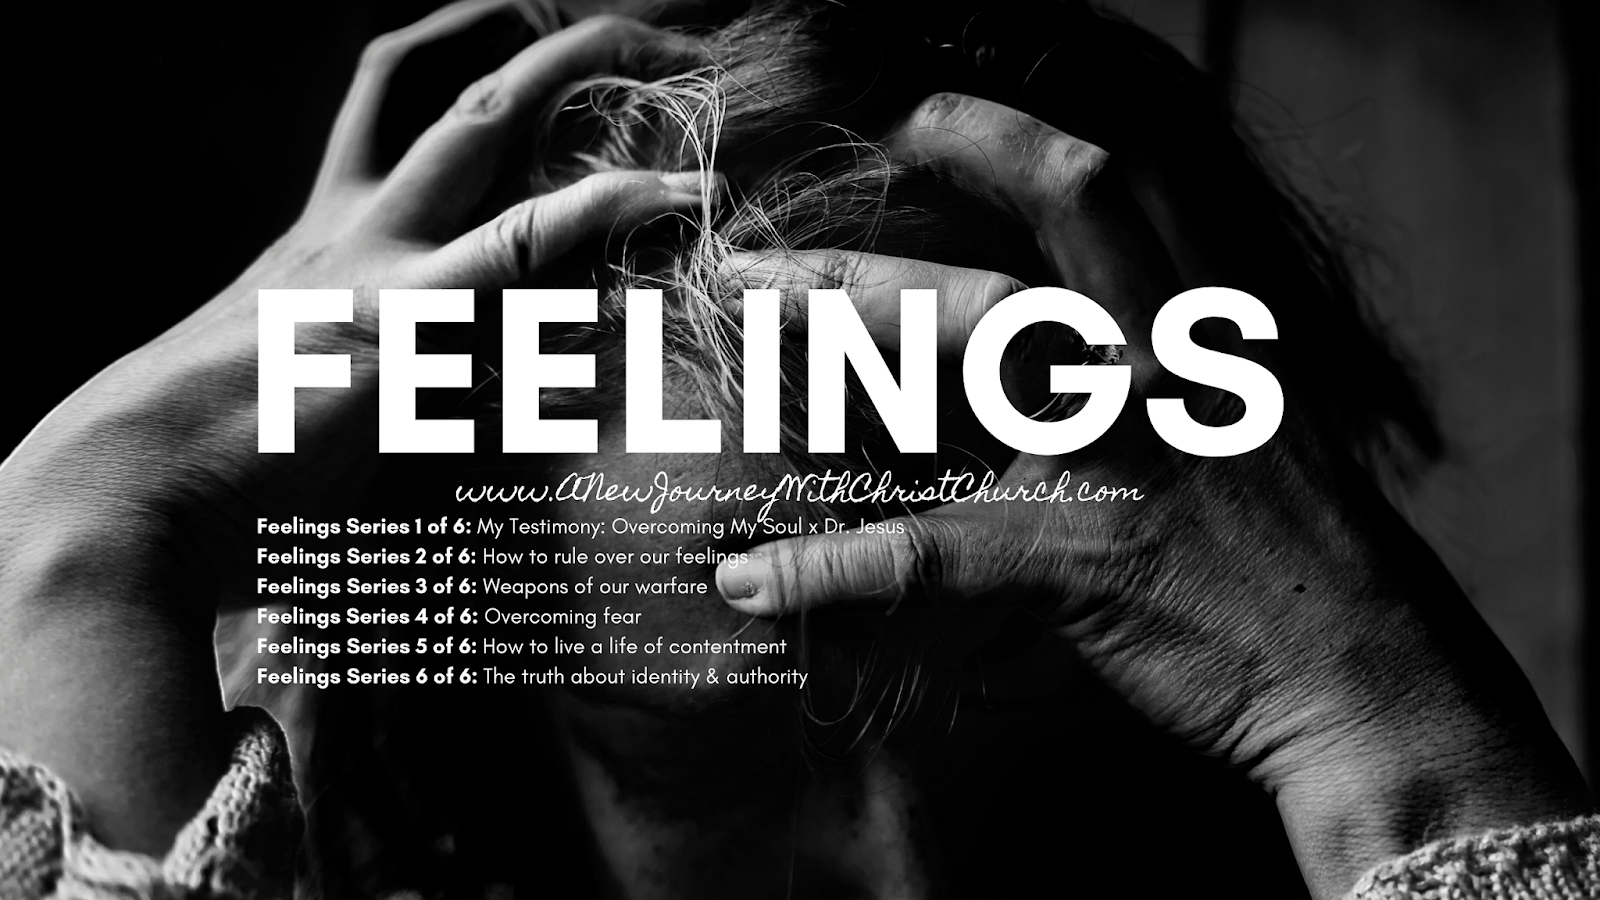 Feelings Series 3 of 6: Weapons of Our Warfare